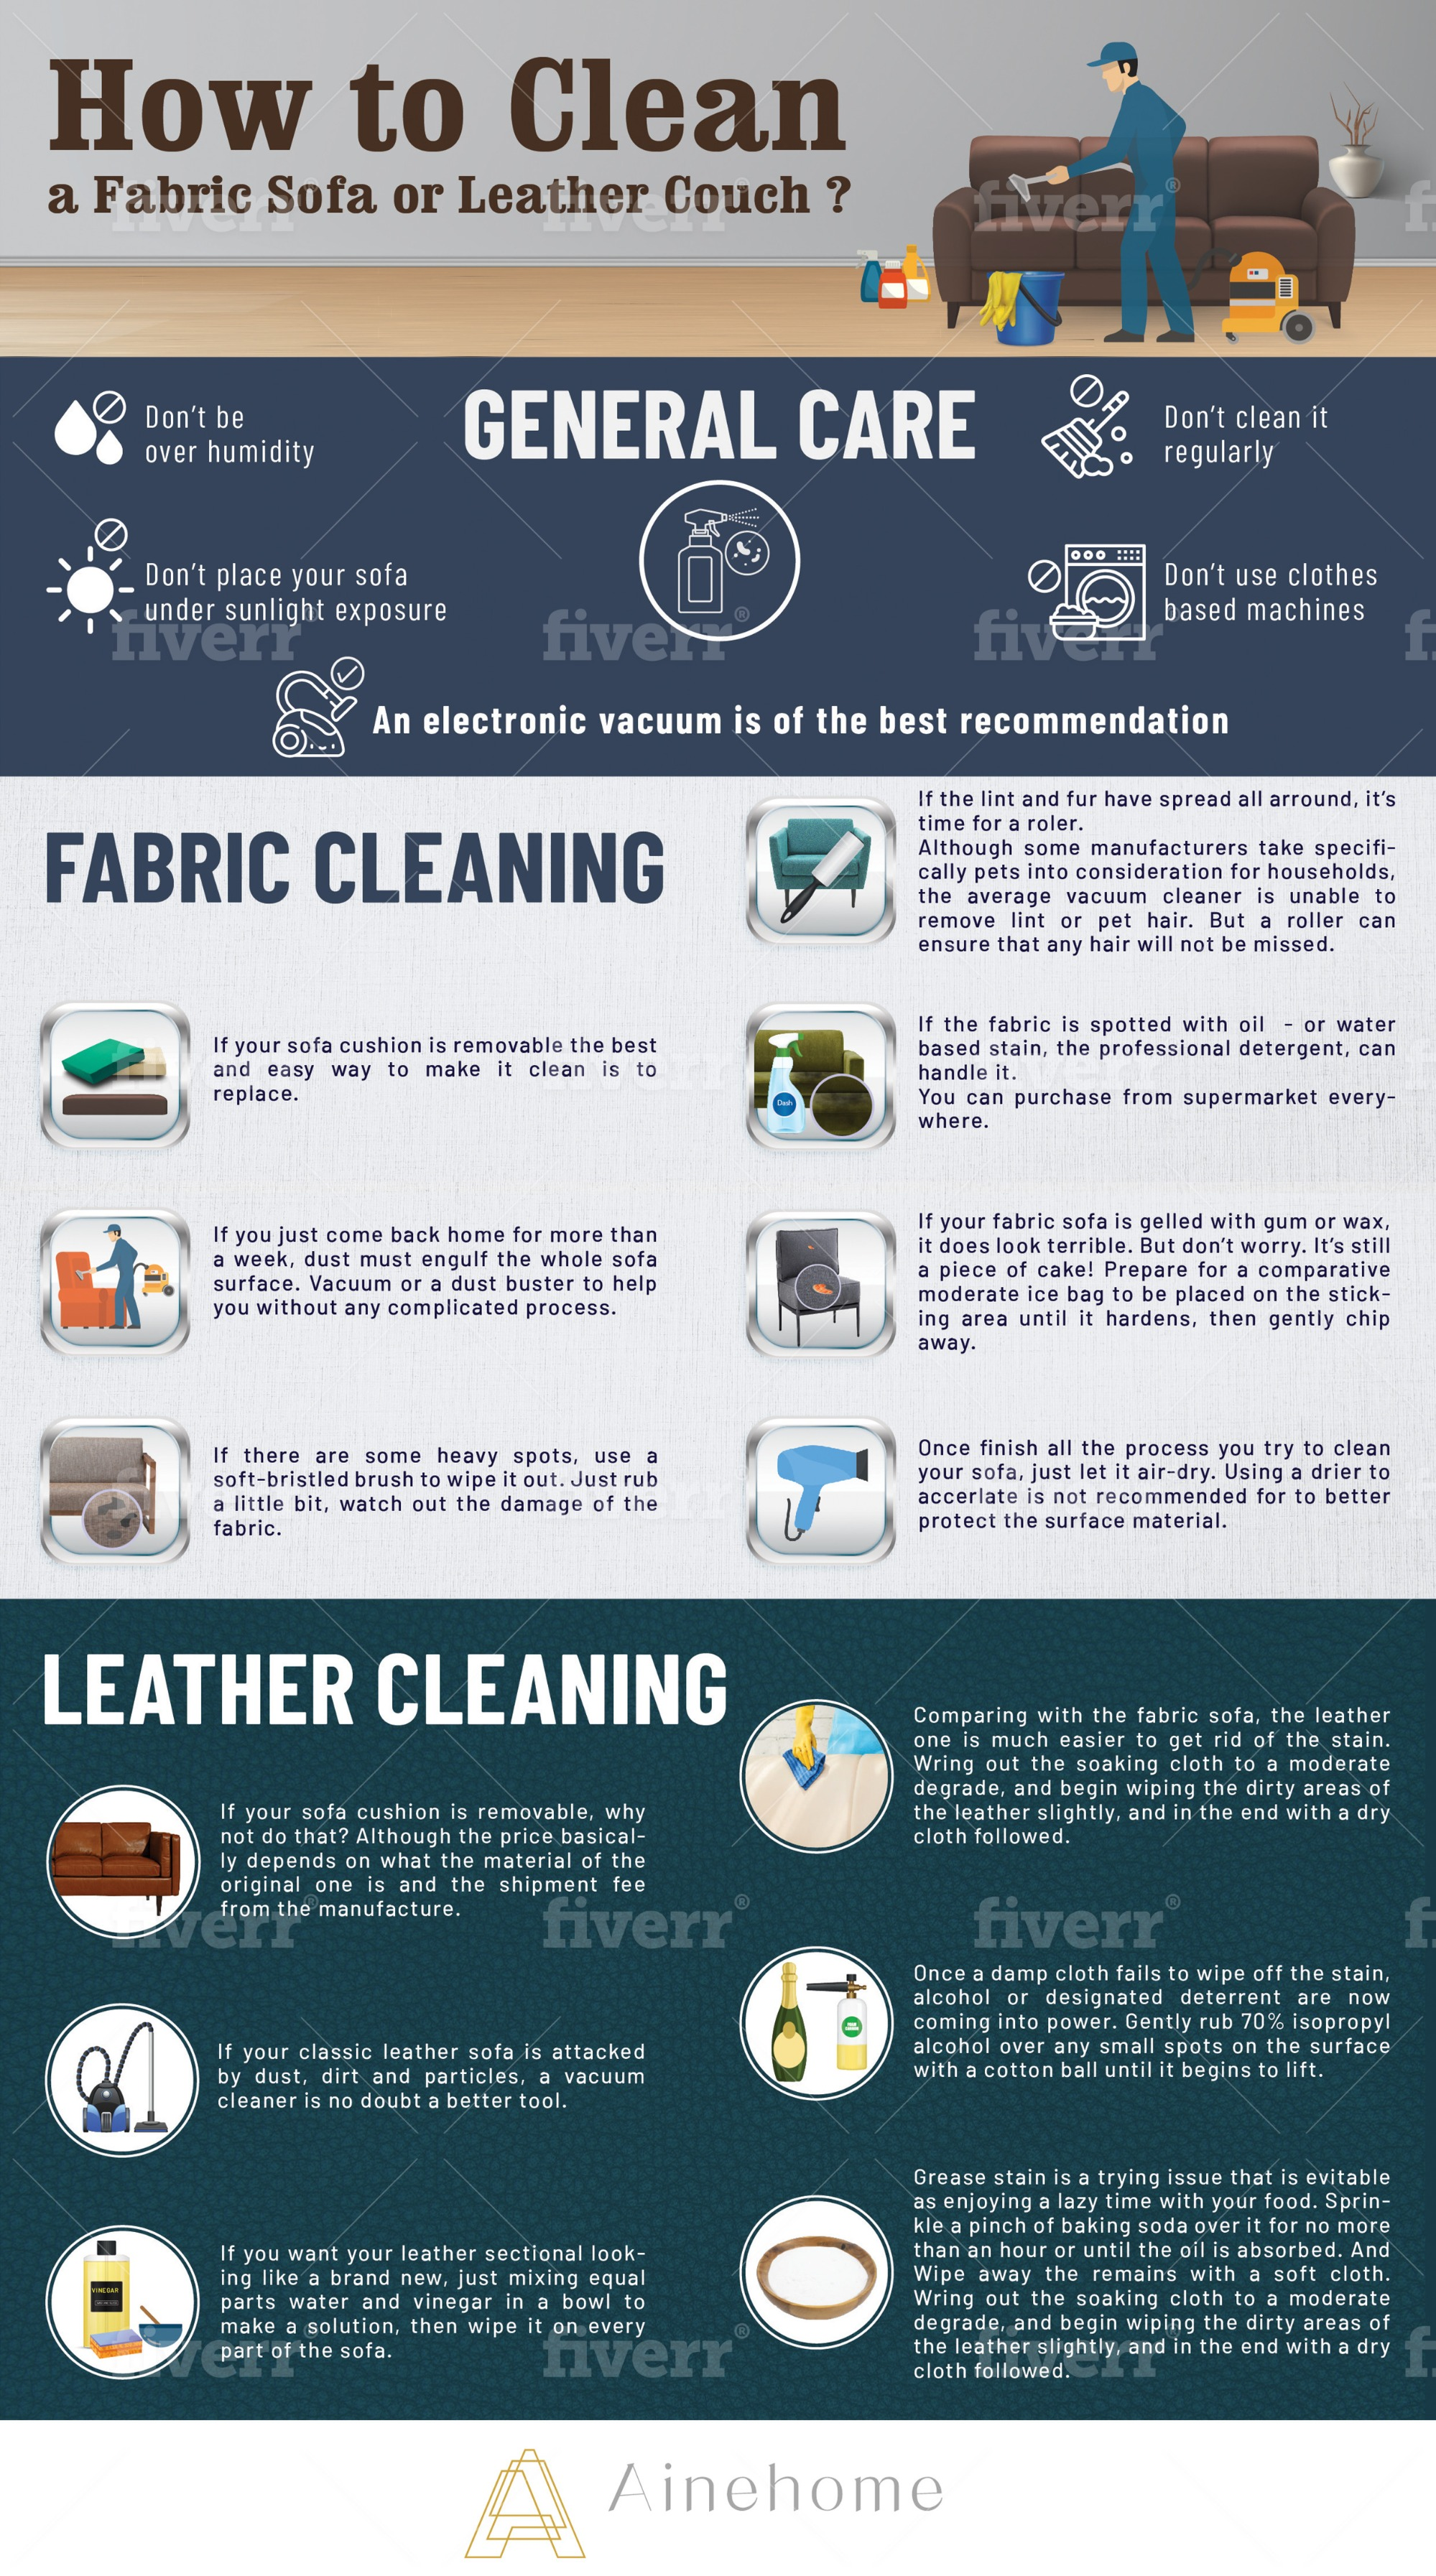 How to Clean a Fabric Sofa or Leather Couch by Ainehome